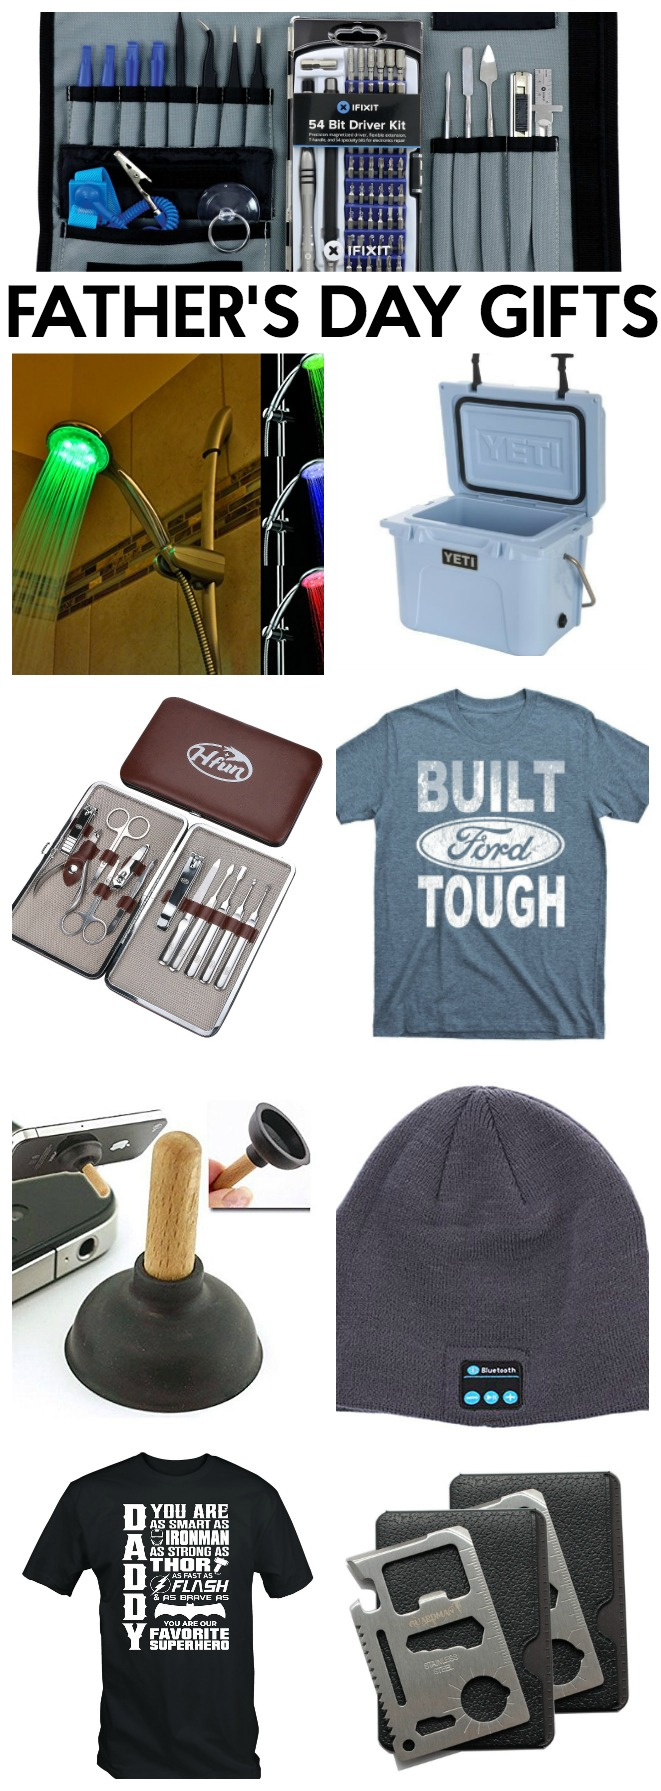 Father's_Day_Gift_Ideas